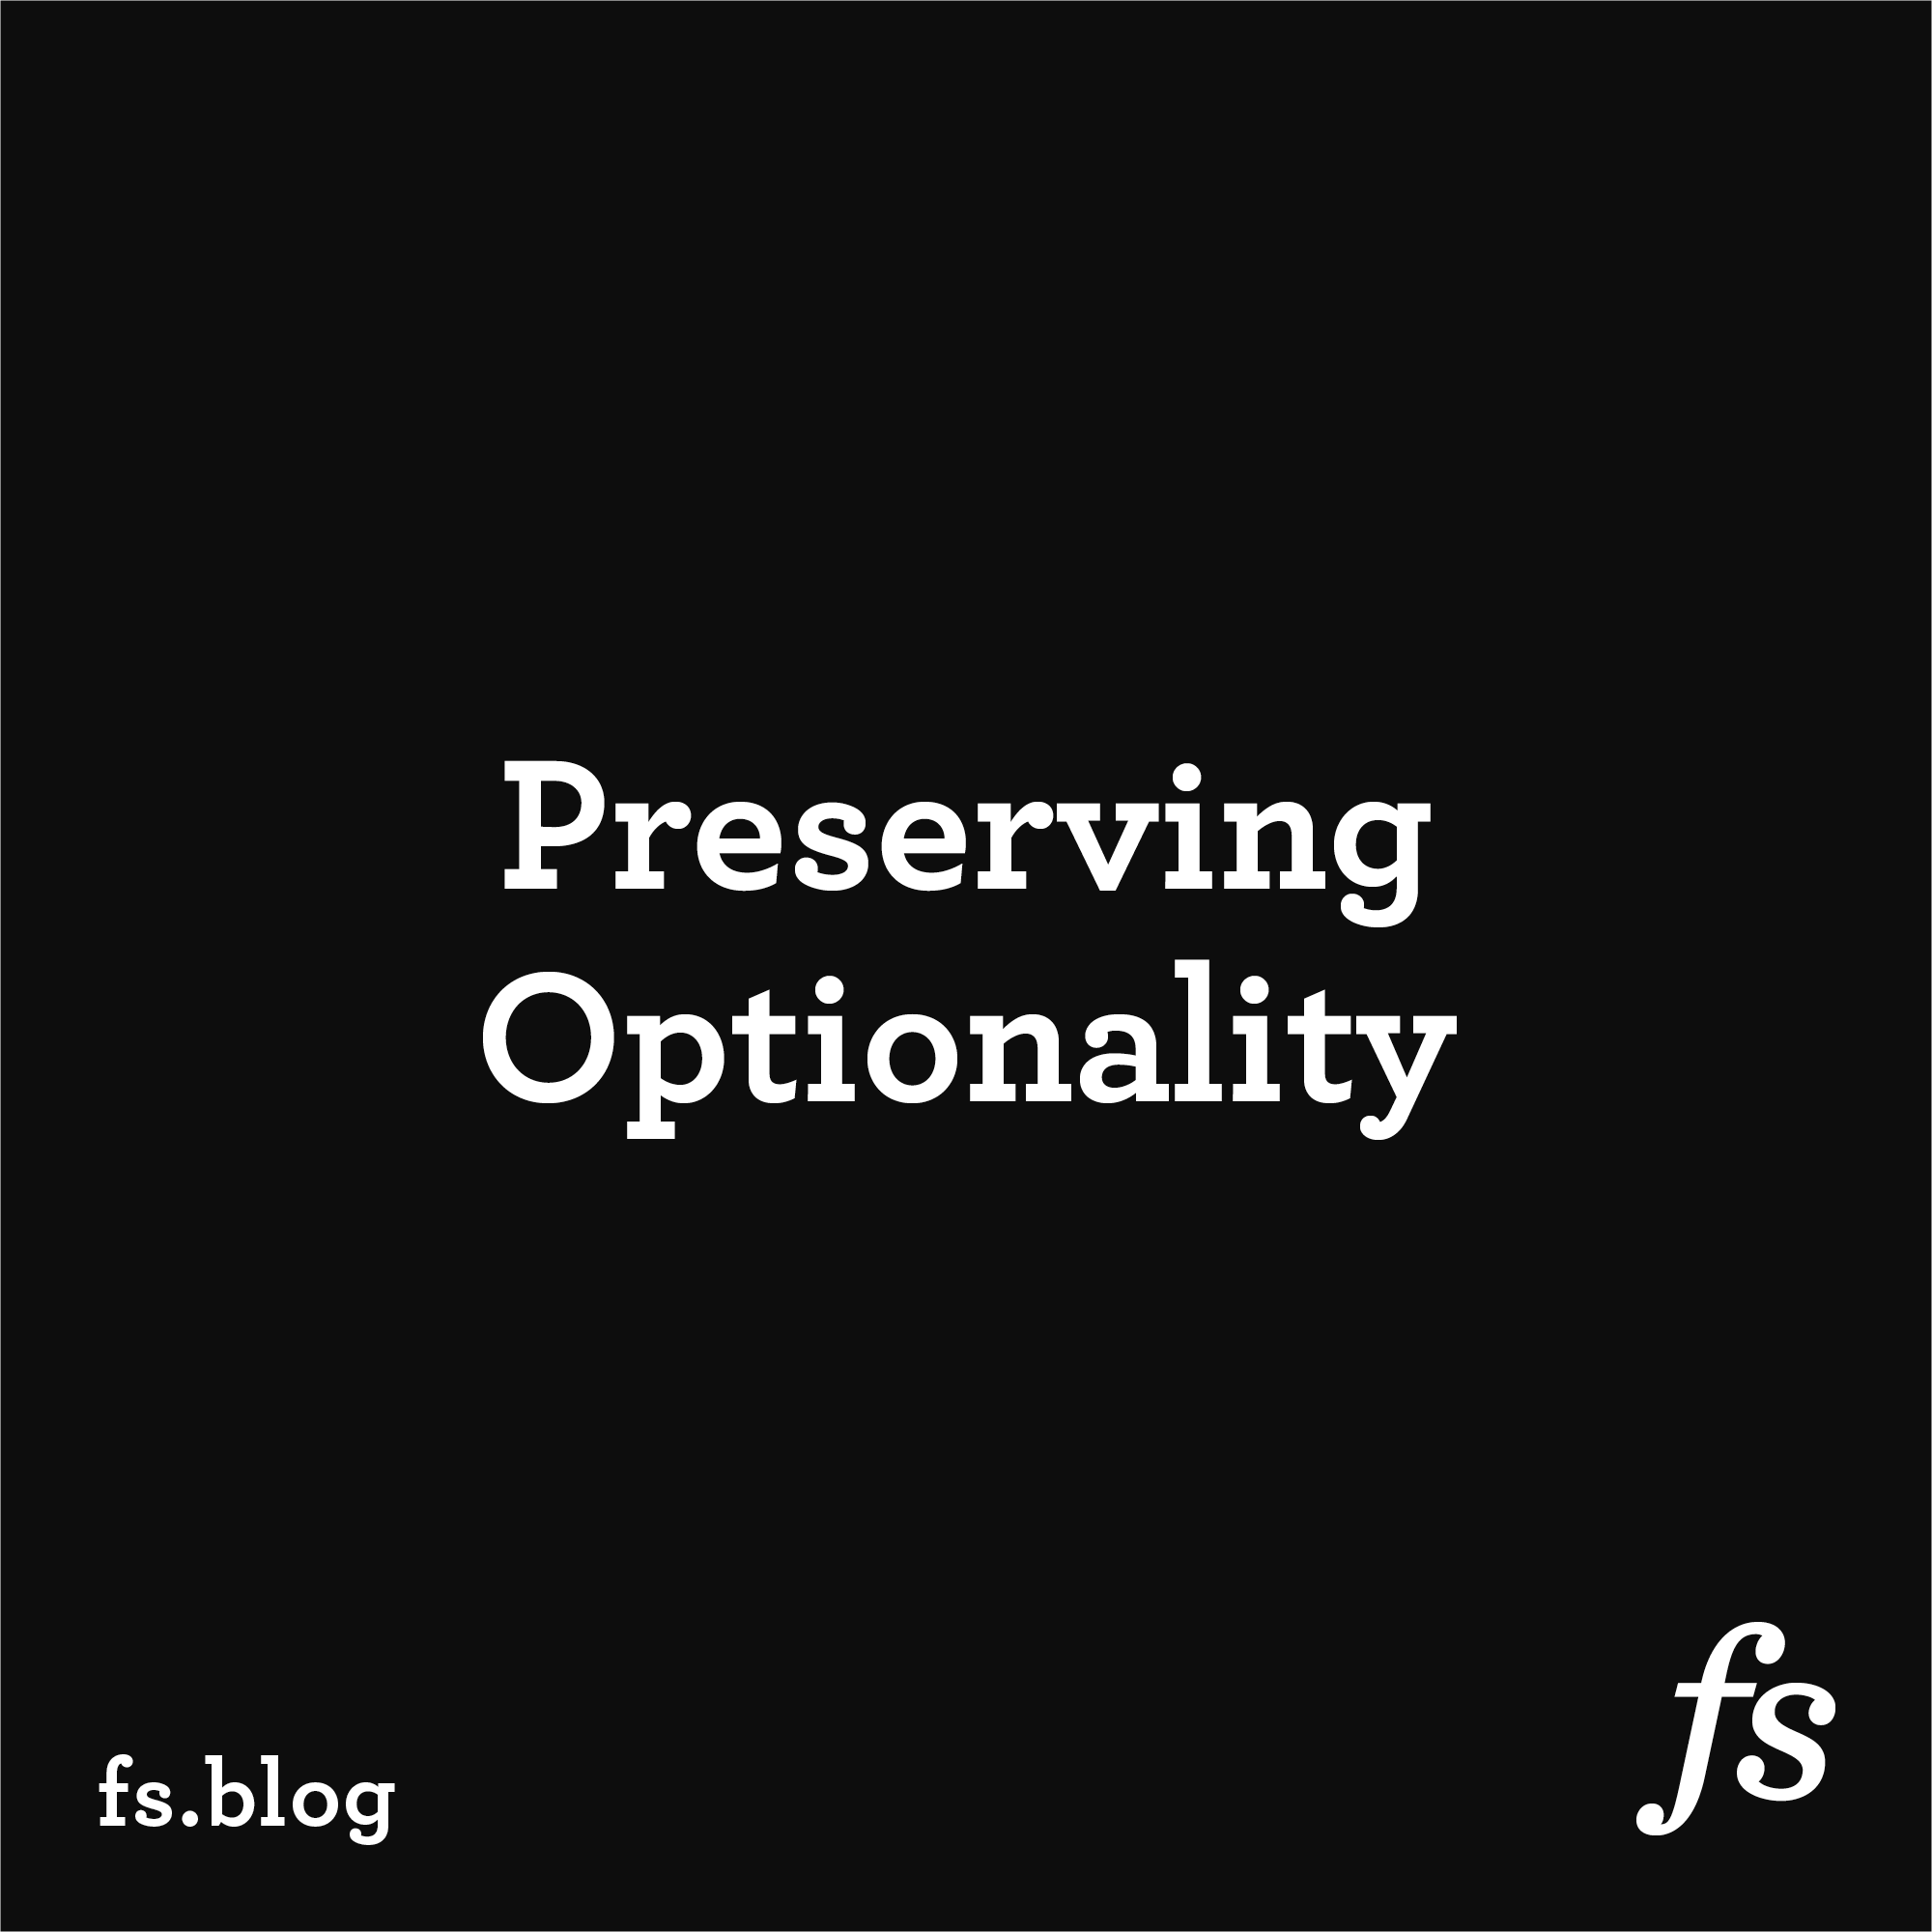 Preserving Optionality: Preparing for the Unknown